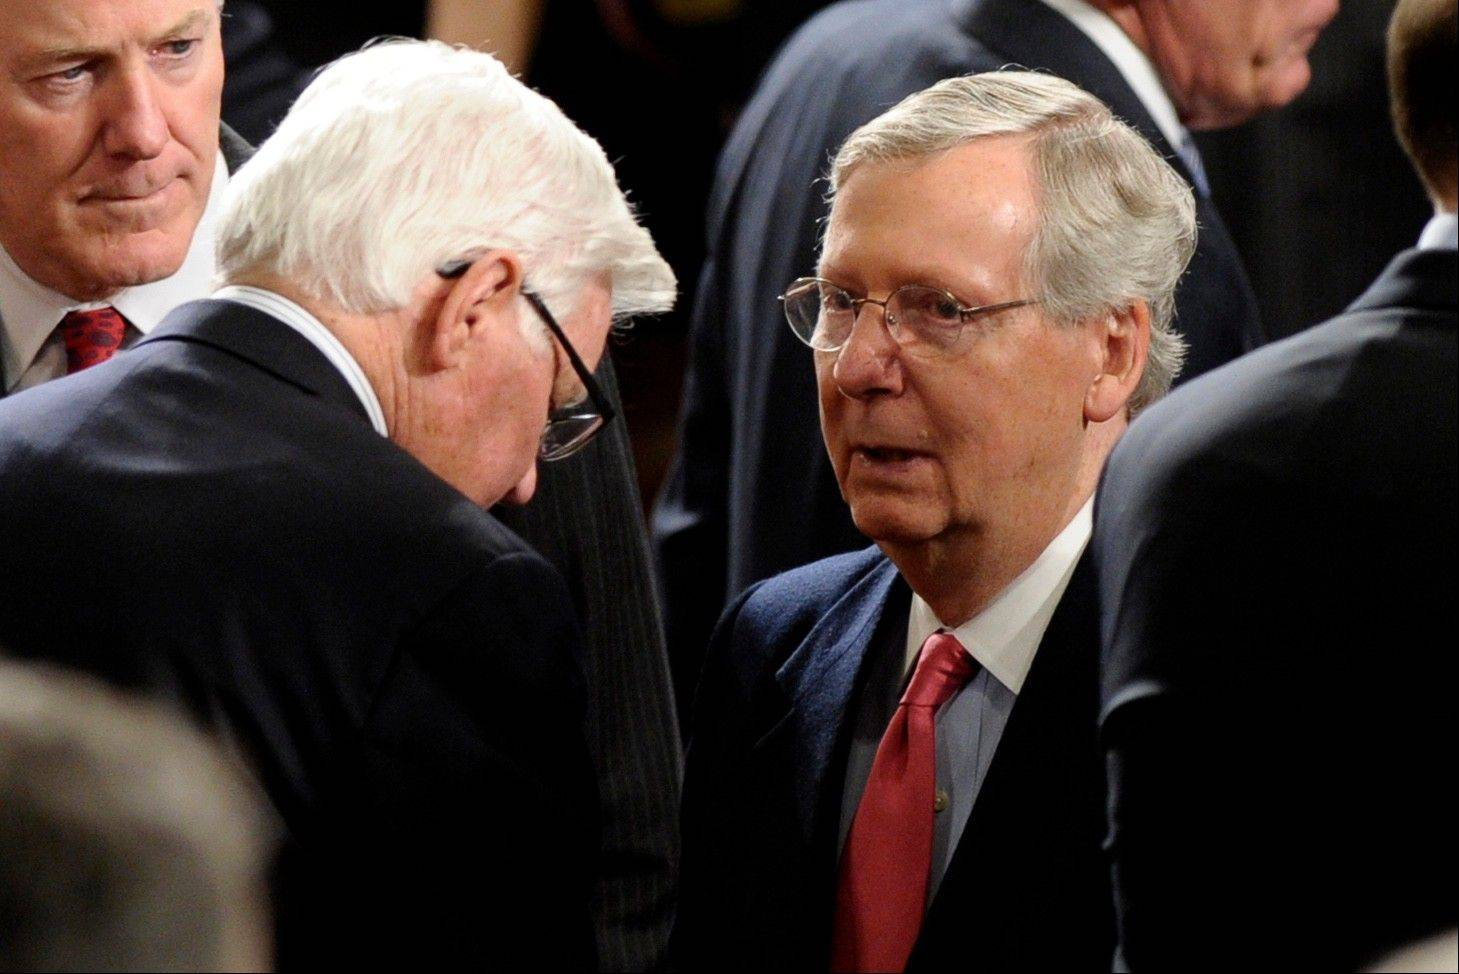 Senate Minority Leader Mitch McConnell of Ky. arrives for President Barack Obama�s State of the Union address on Capitol Hill in Washington, Tuesday Jan. 28, 2014.